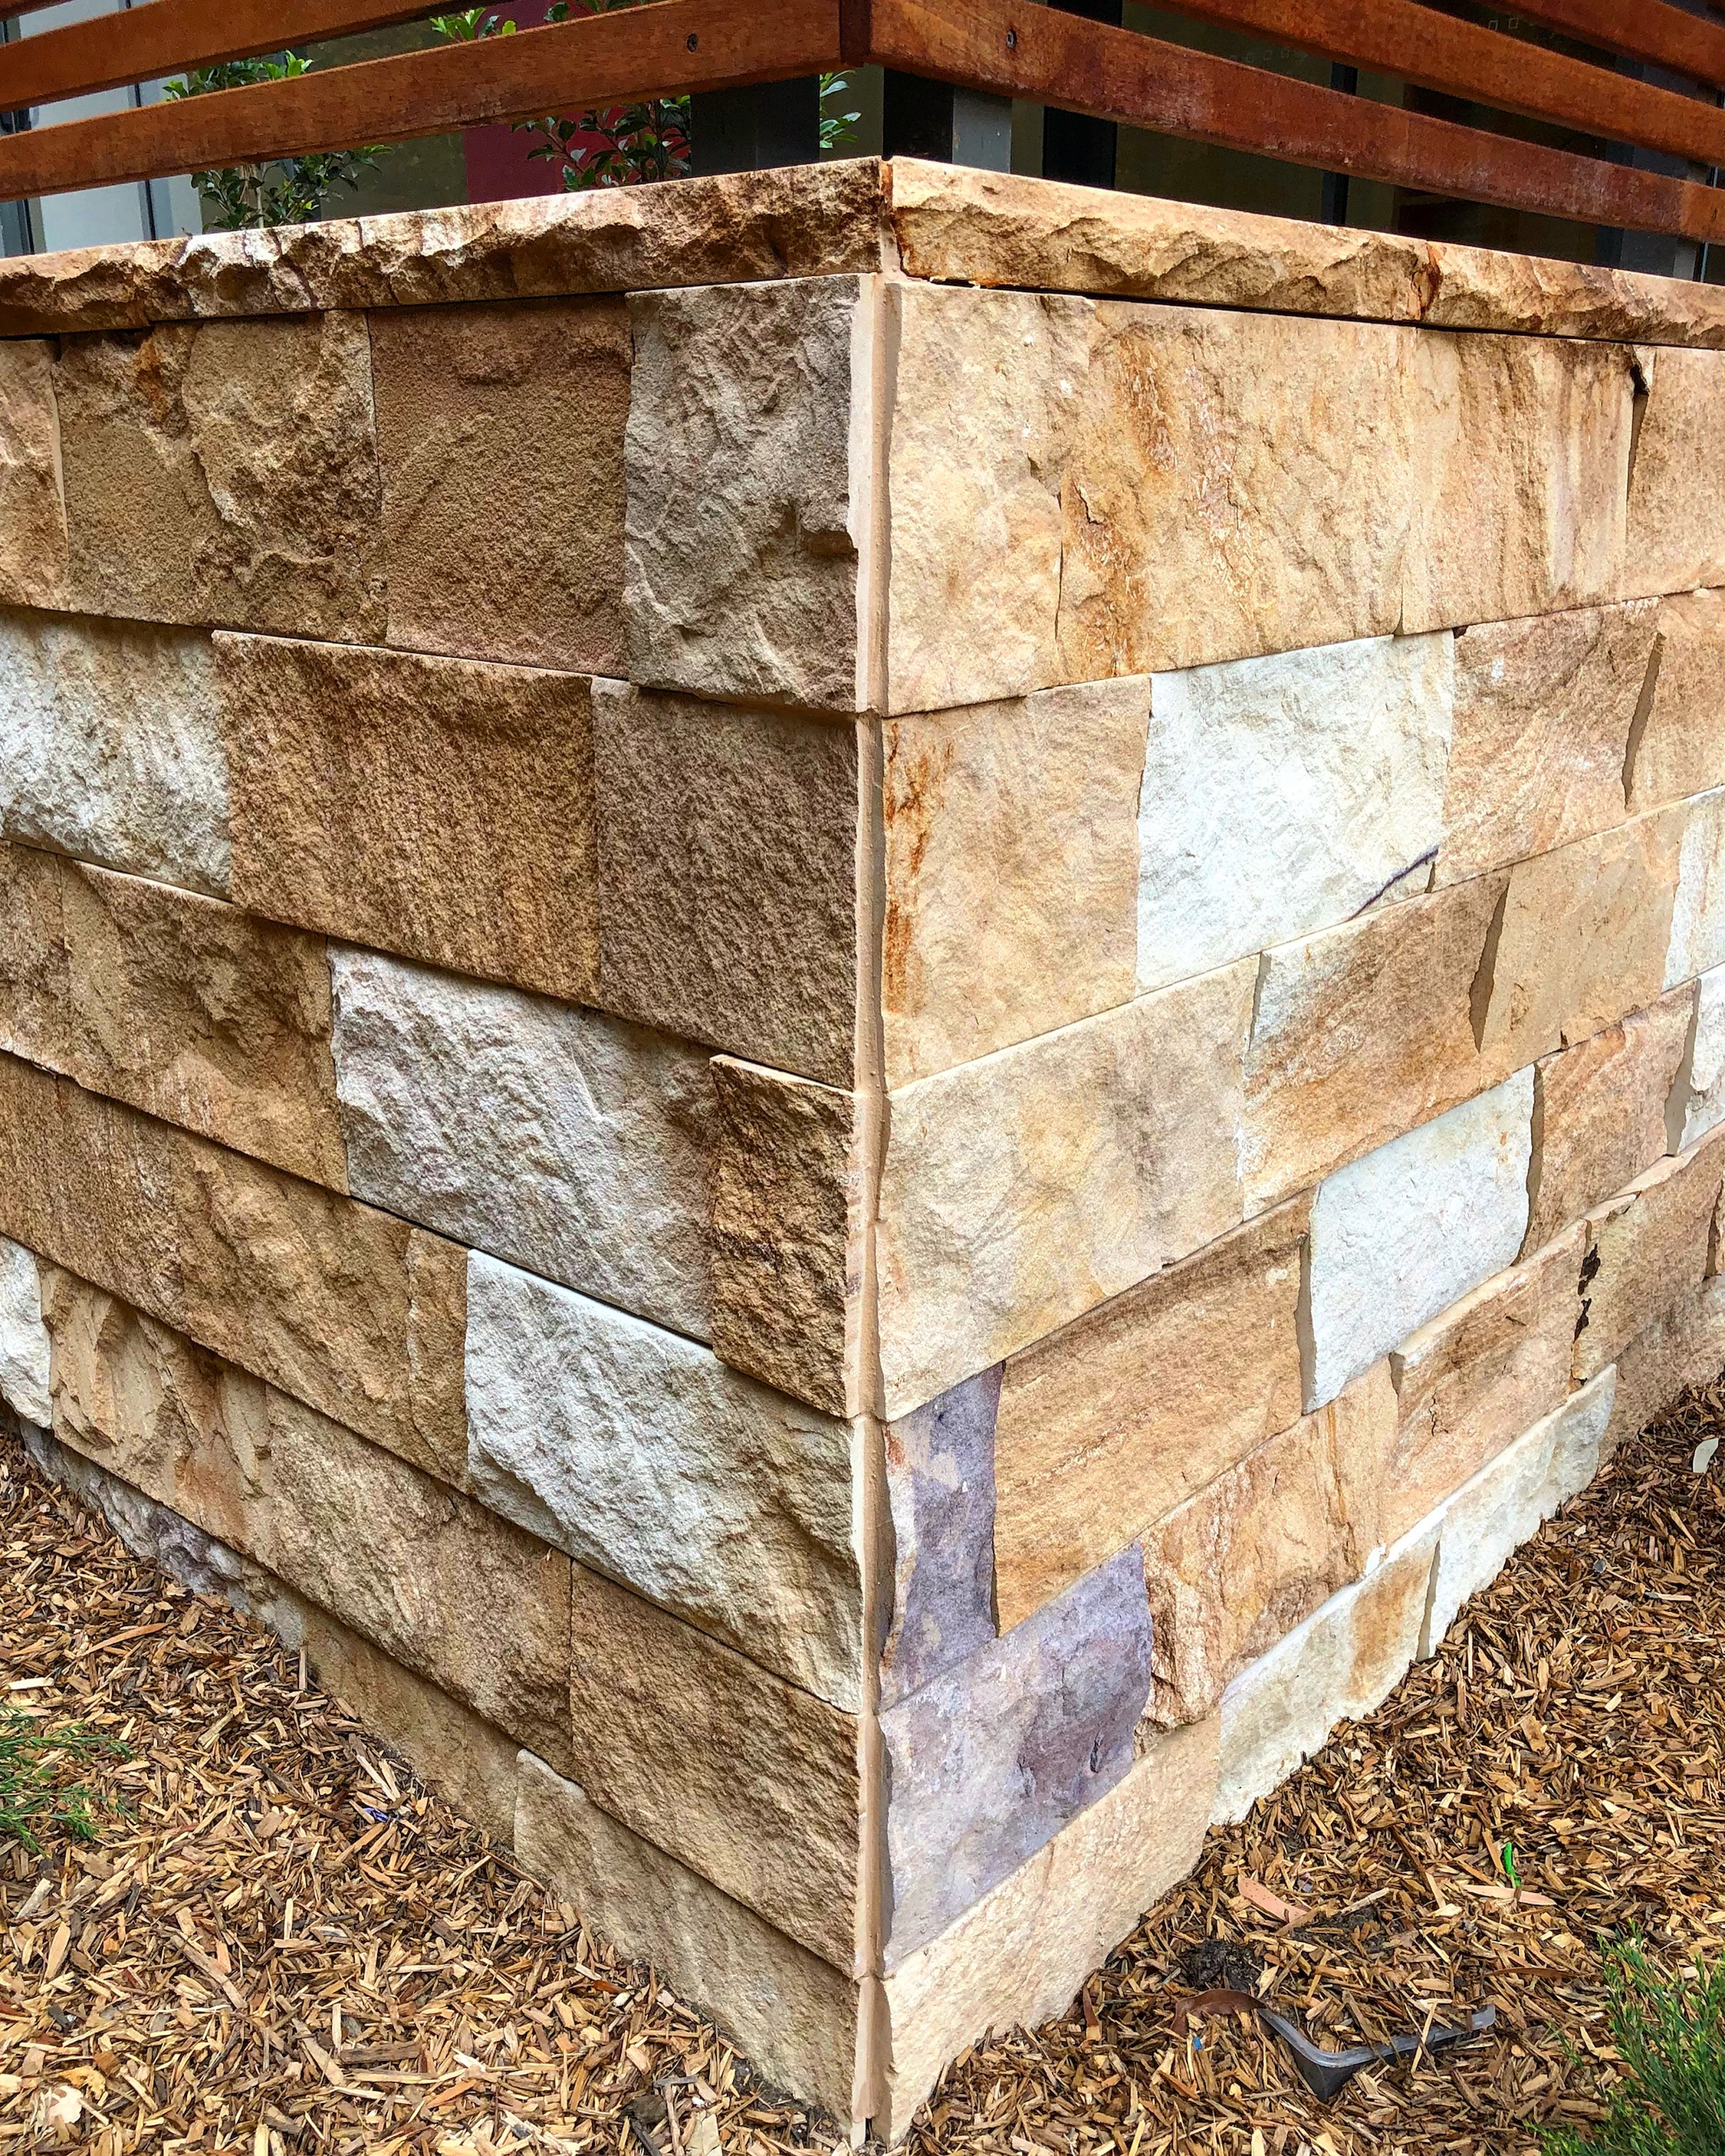 Natural split face kirra Ranch wall stone claddings and capping stones used in a house wall